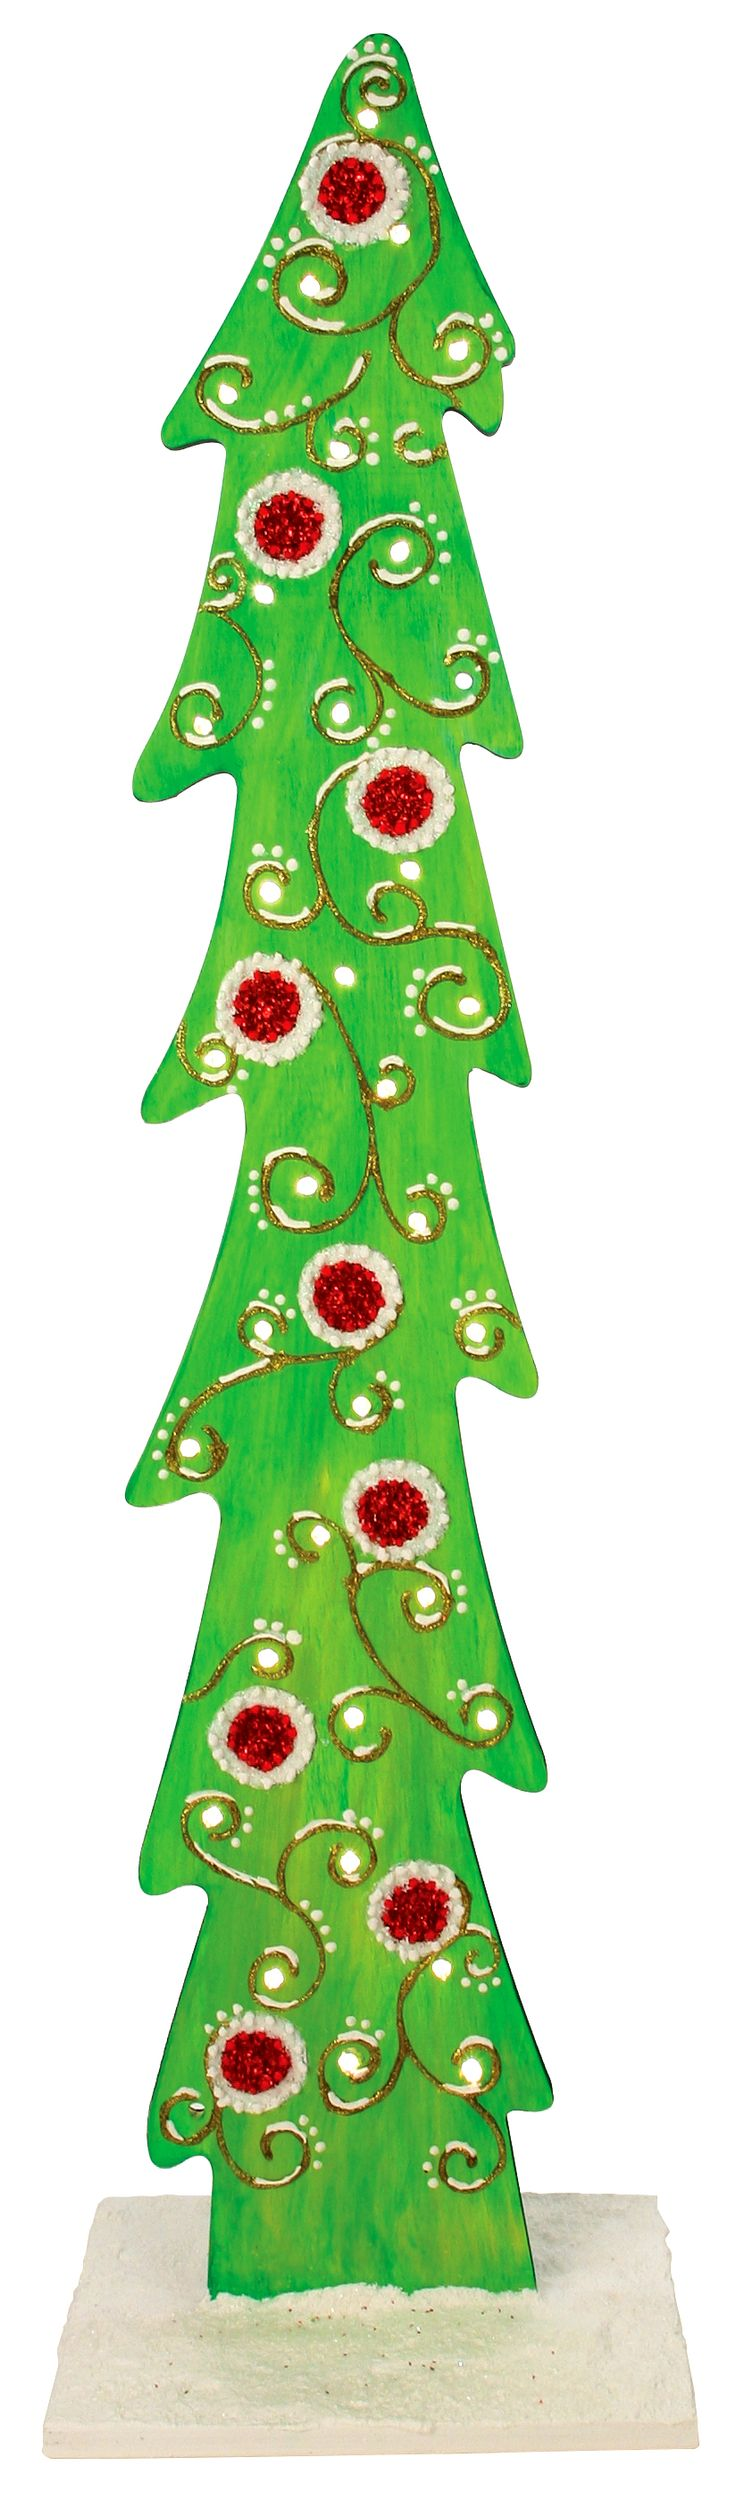 1000 ideas about Wooden Christmas Trees on